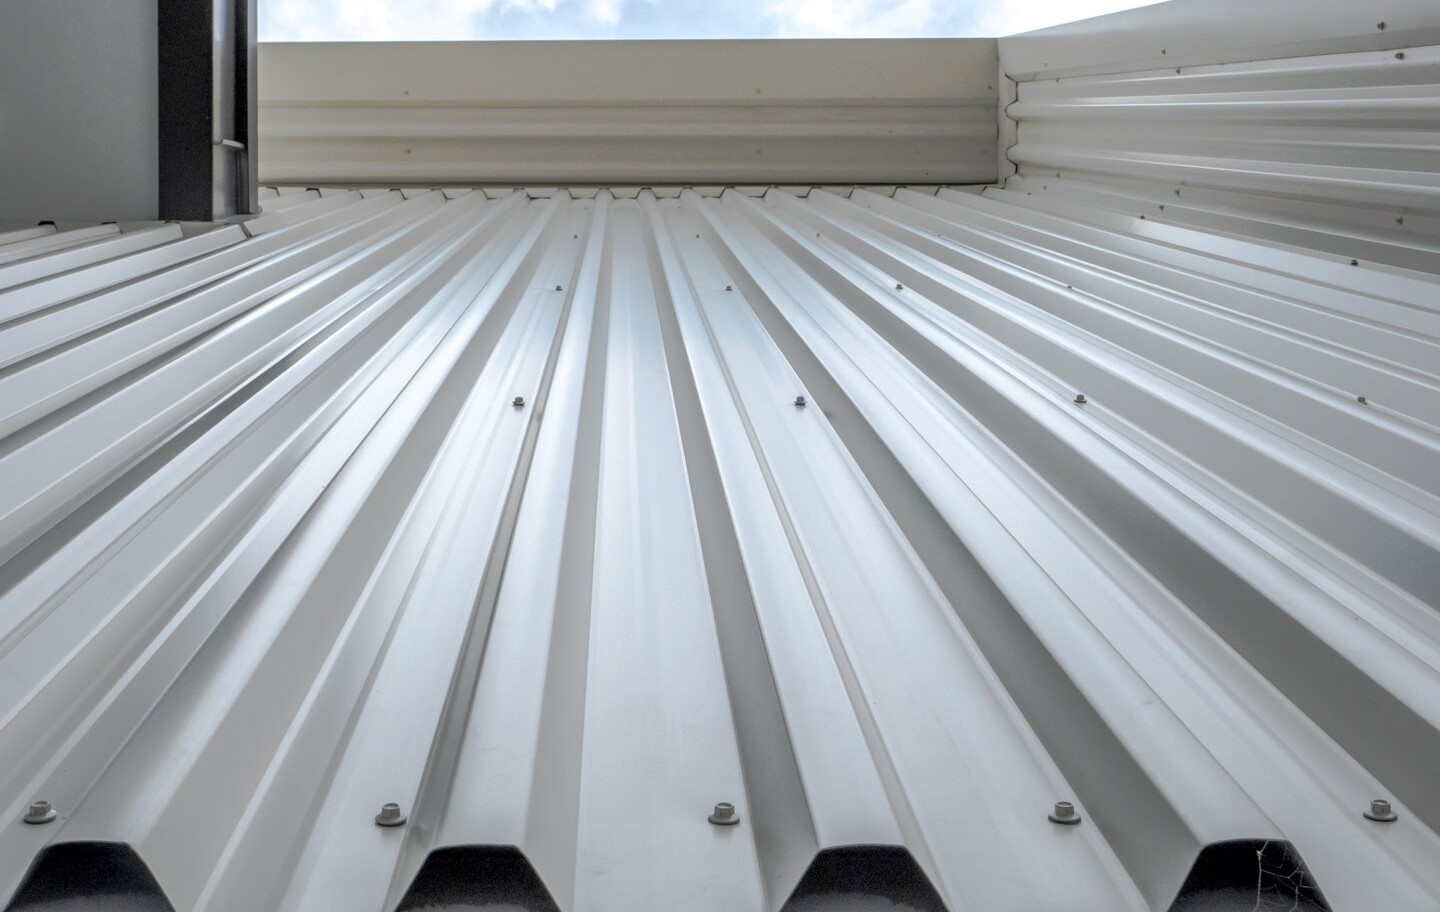 TRS5 metal roofing from Sunnyside - home